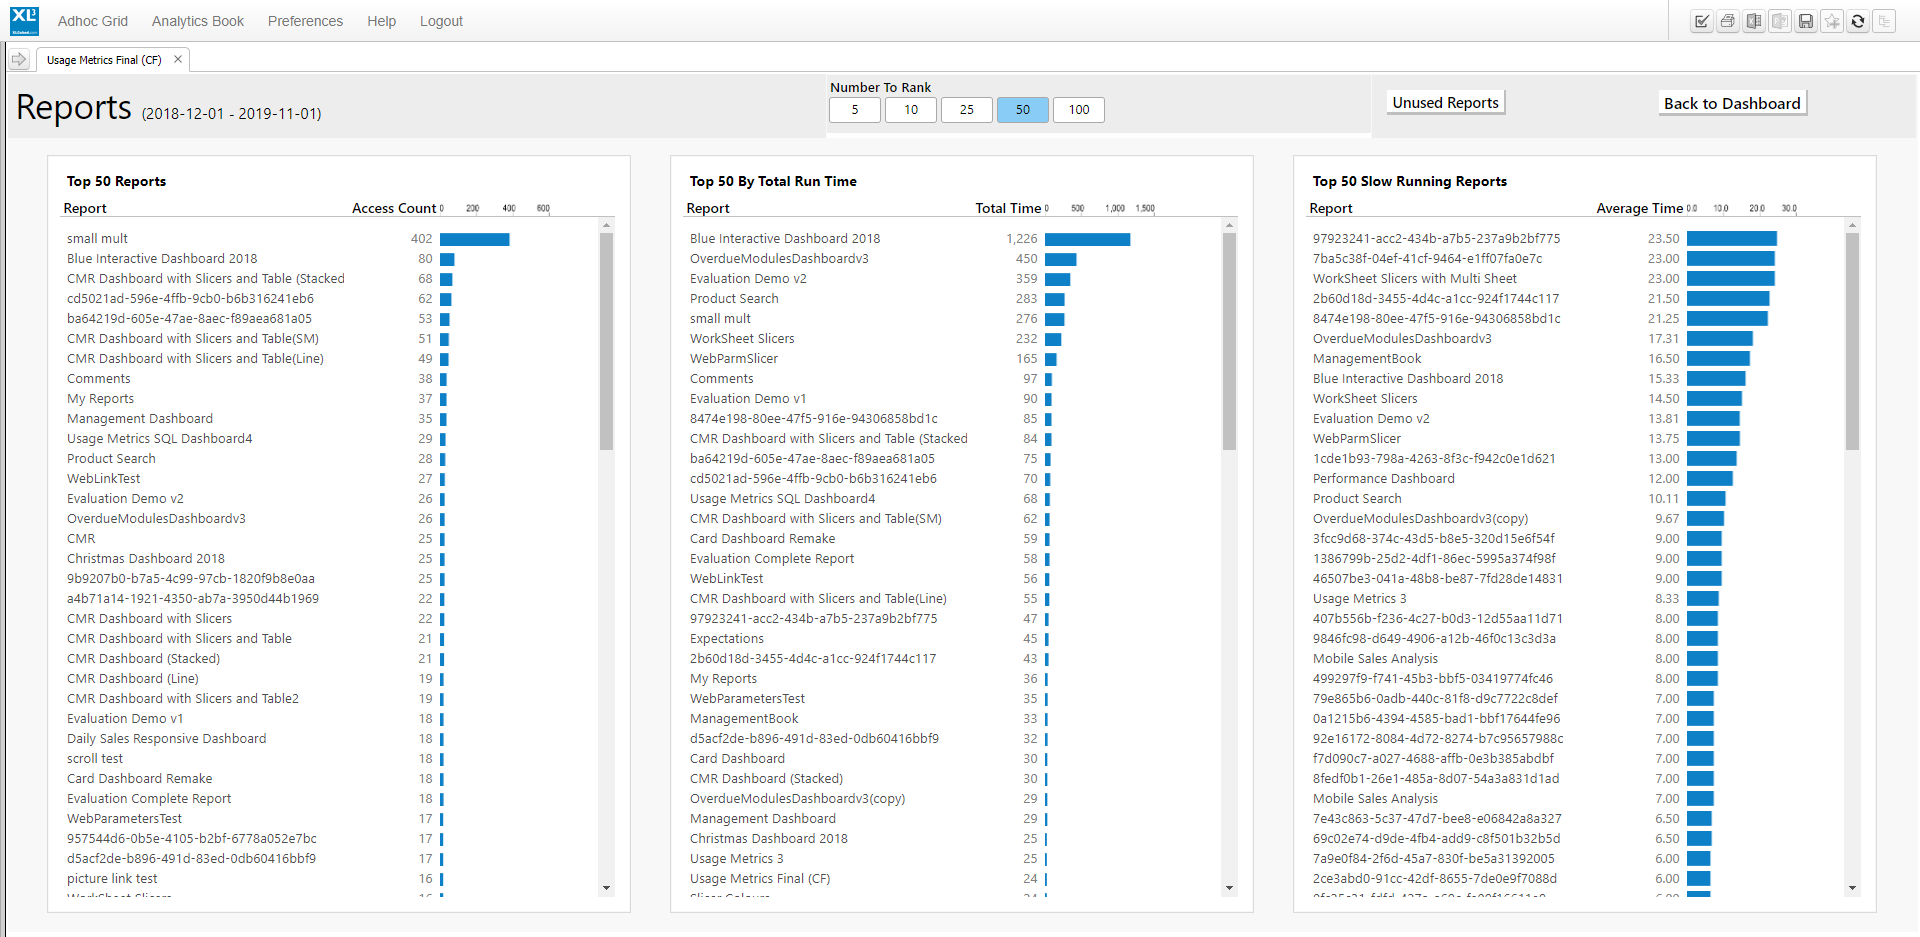 A View of the Report Usage